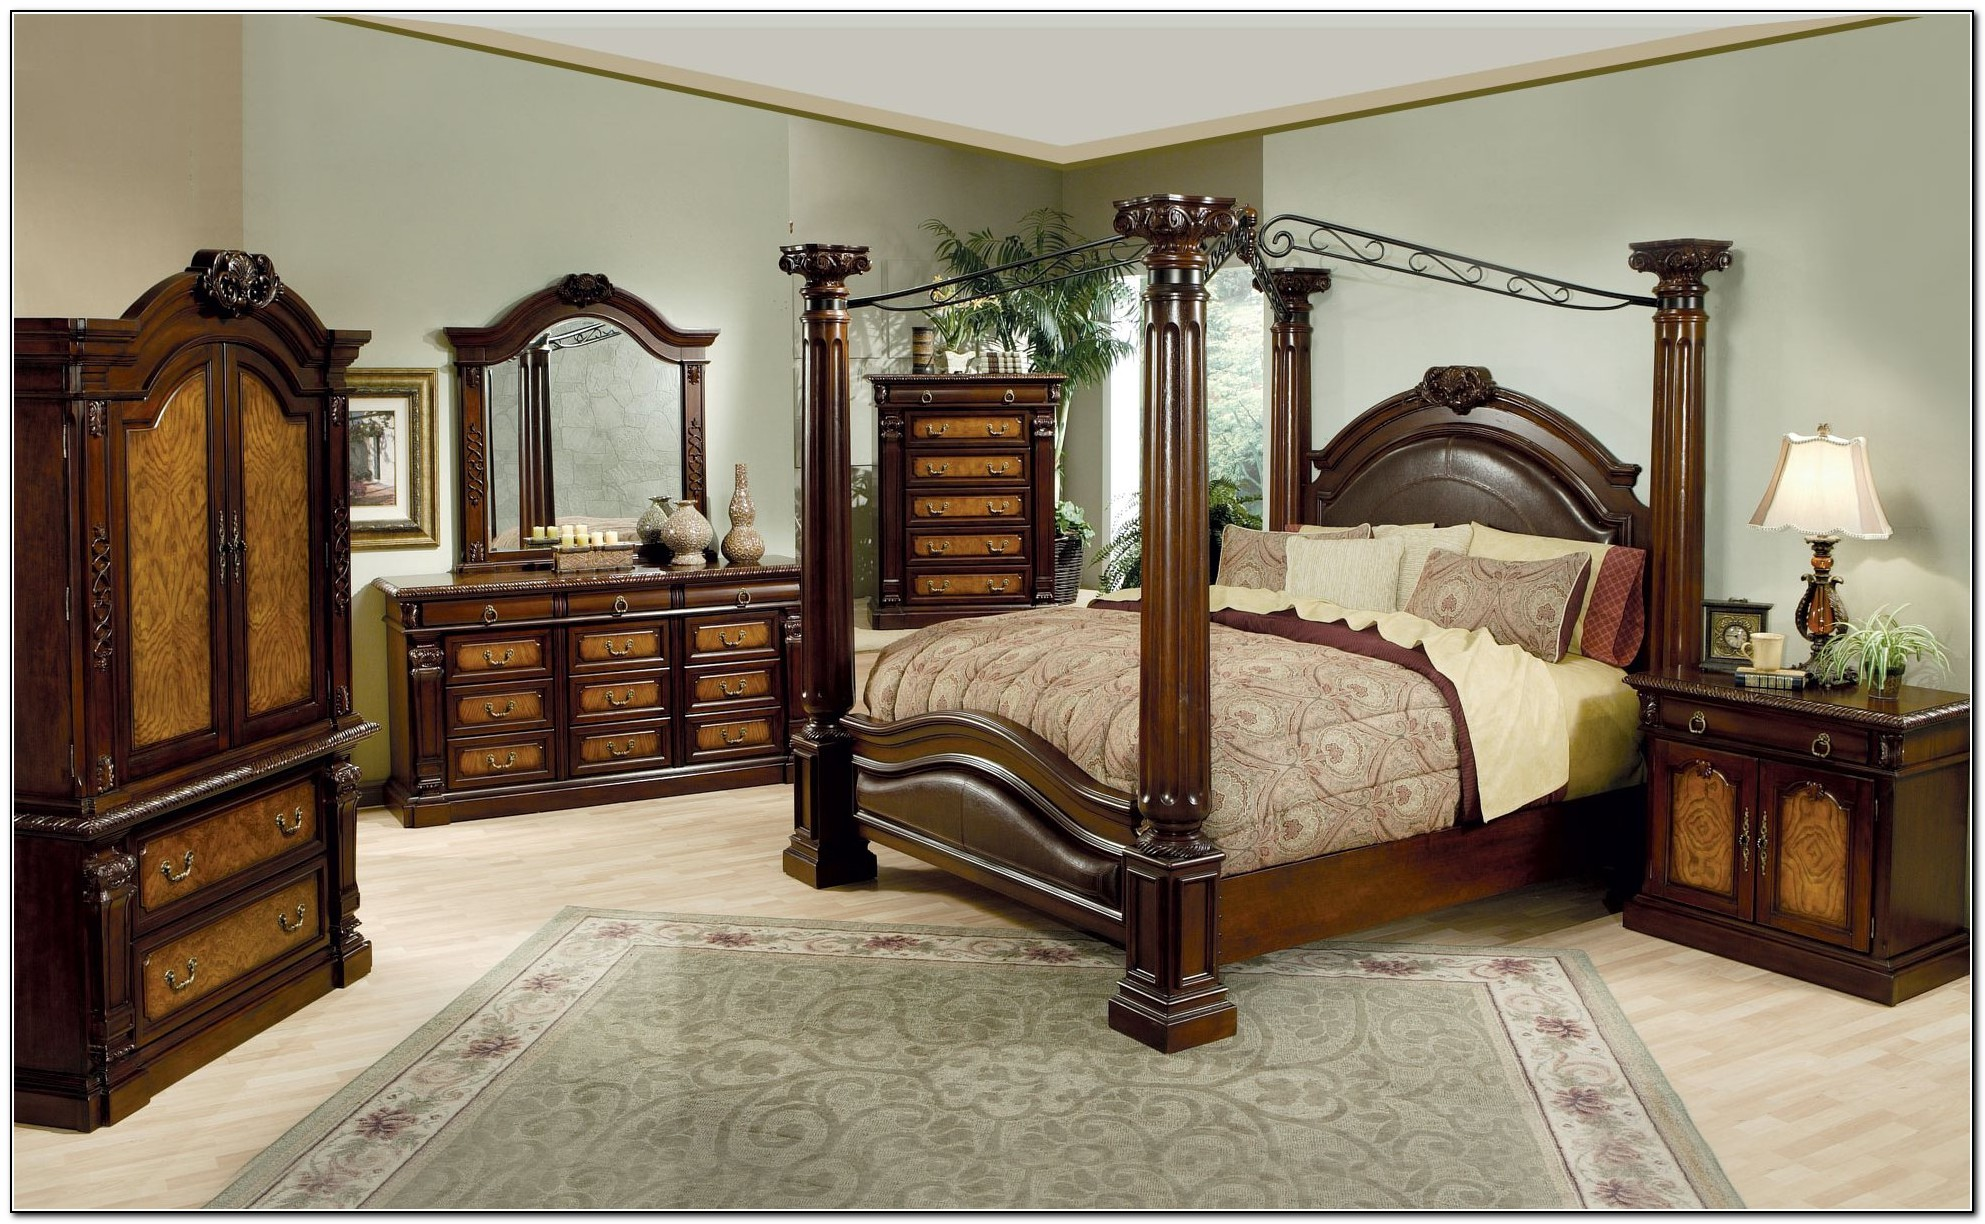 luxury king size canopy bed with dresstable and comforter sets also rug : canopy bed comforter sets - memphite.com